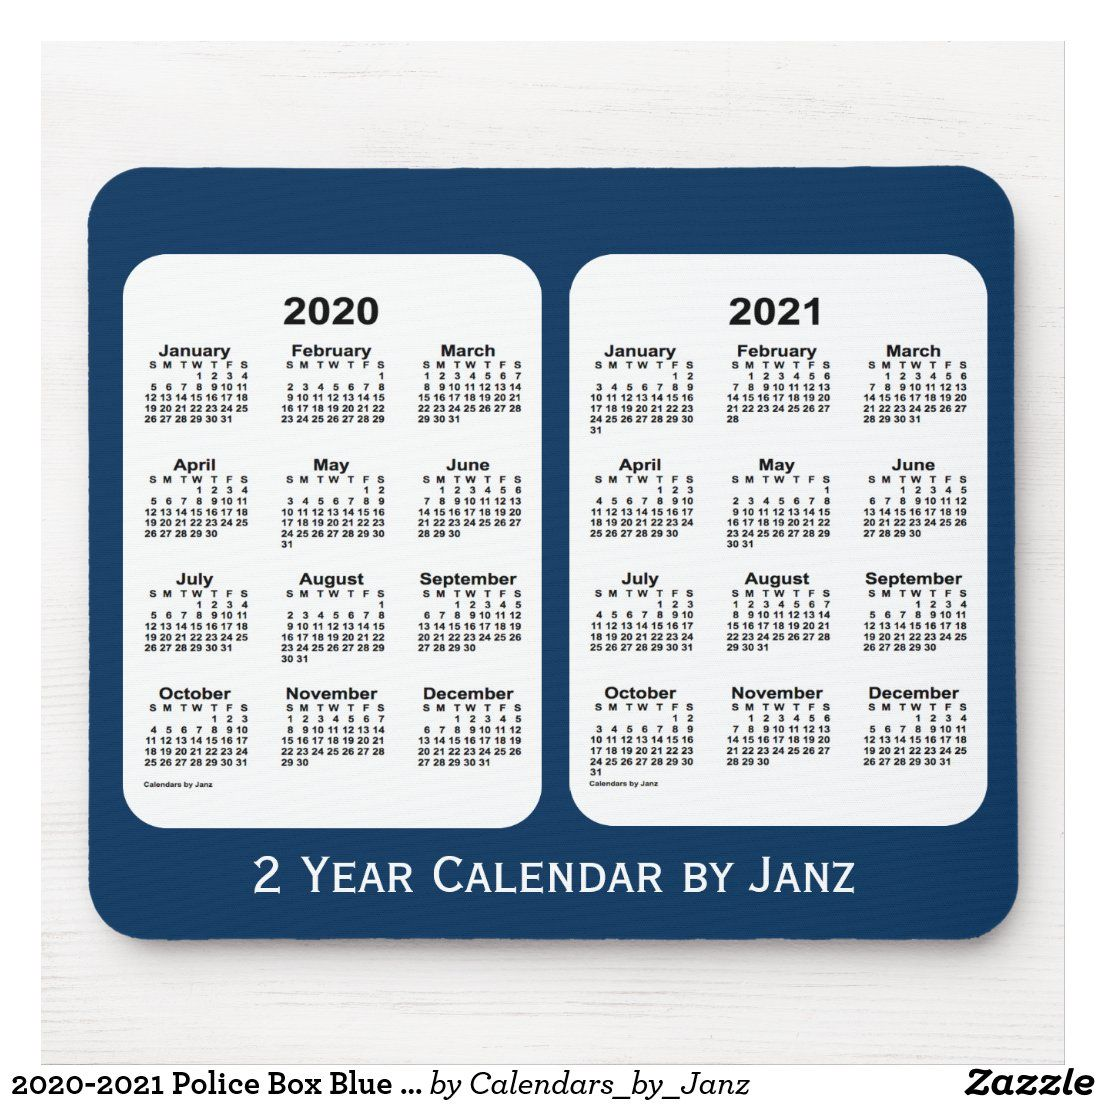 20202021 Police Box Blue 2 Year Calendar by Janz Mouse